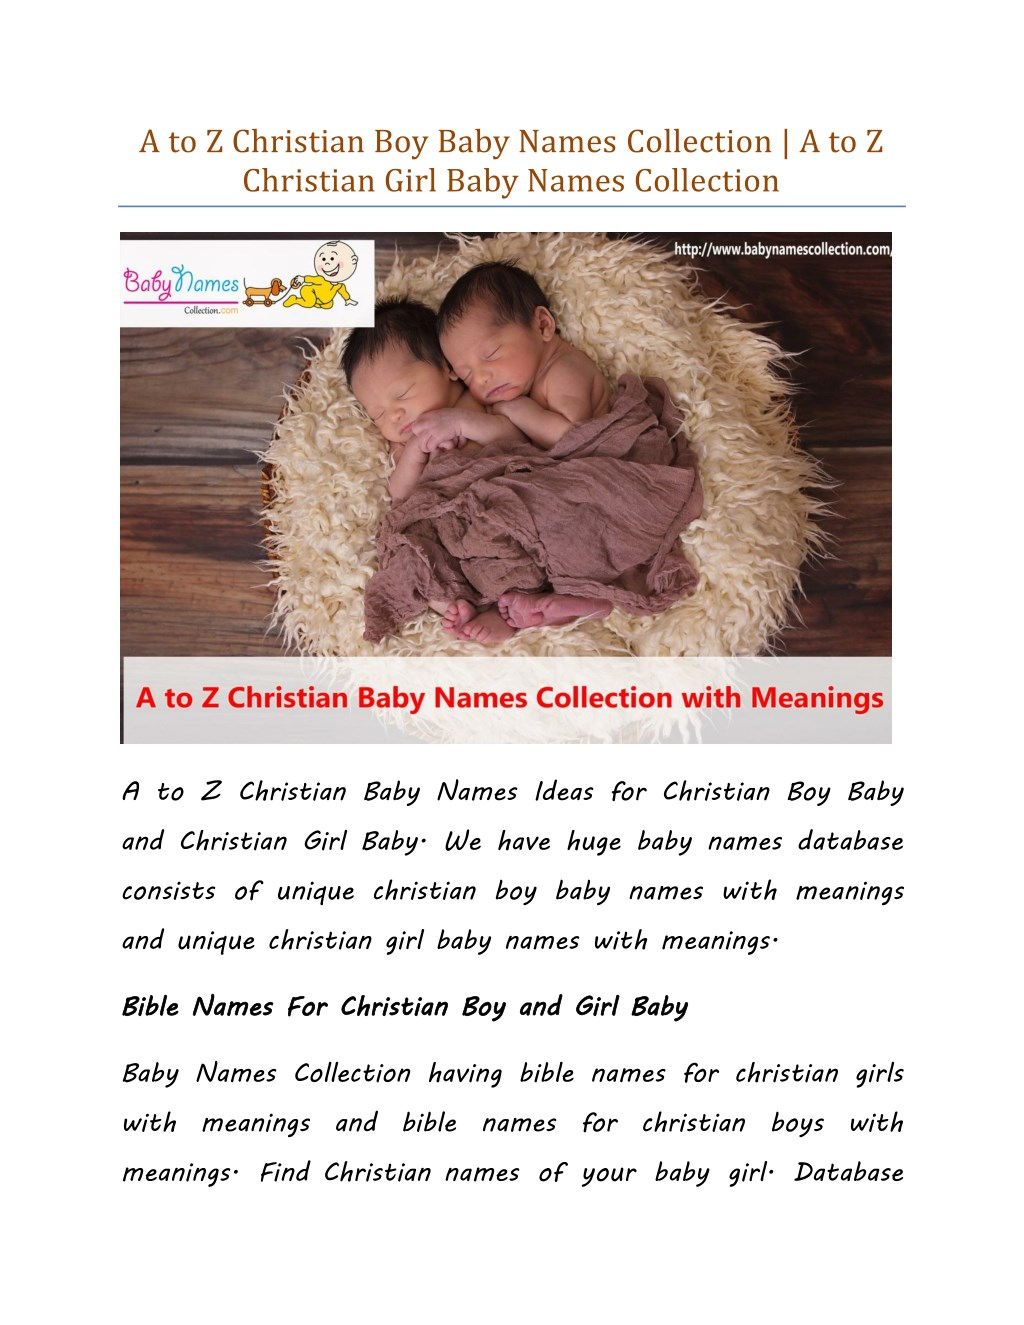 Ppt A To Z Christian Boy Baby Names Collection A To Z Christian